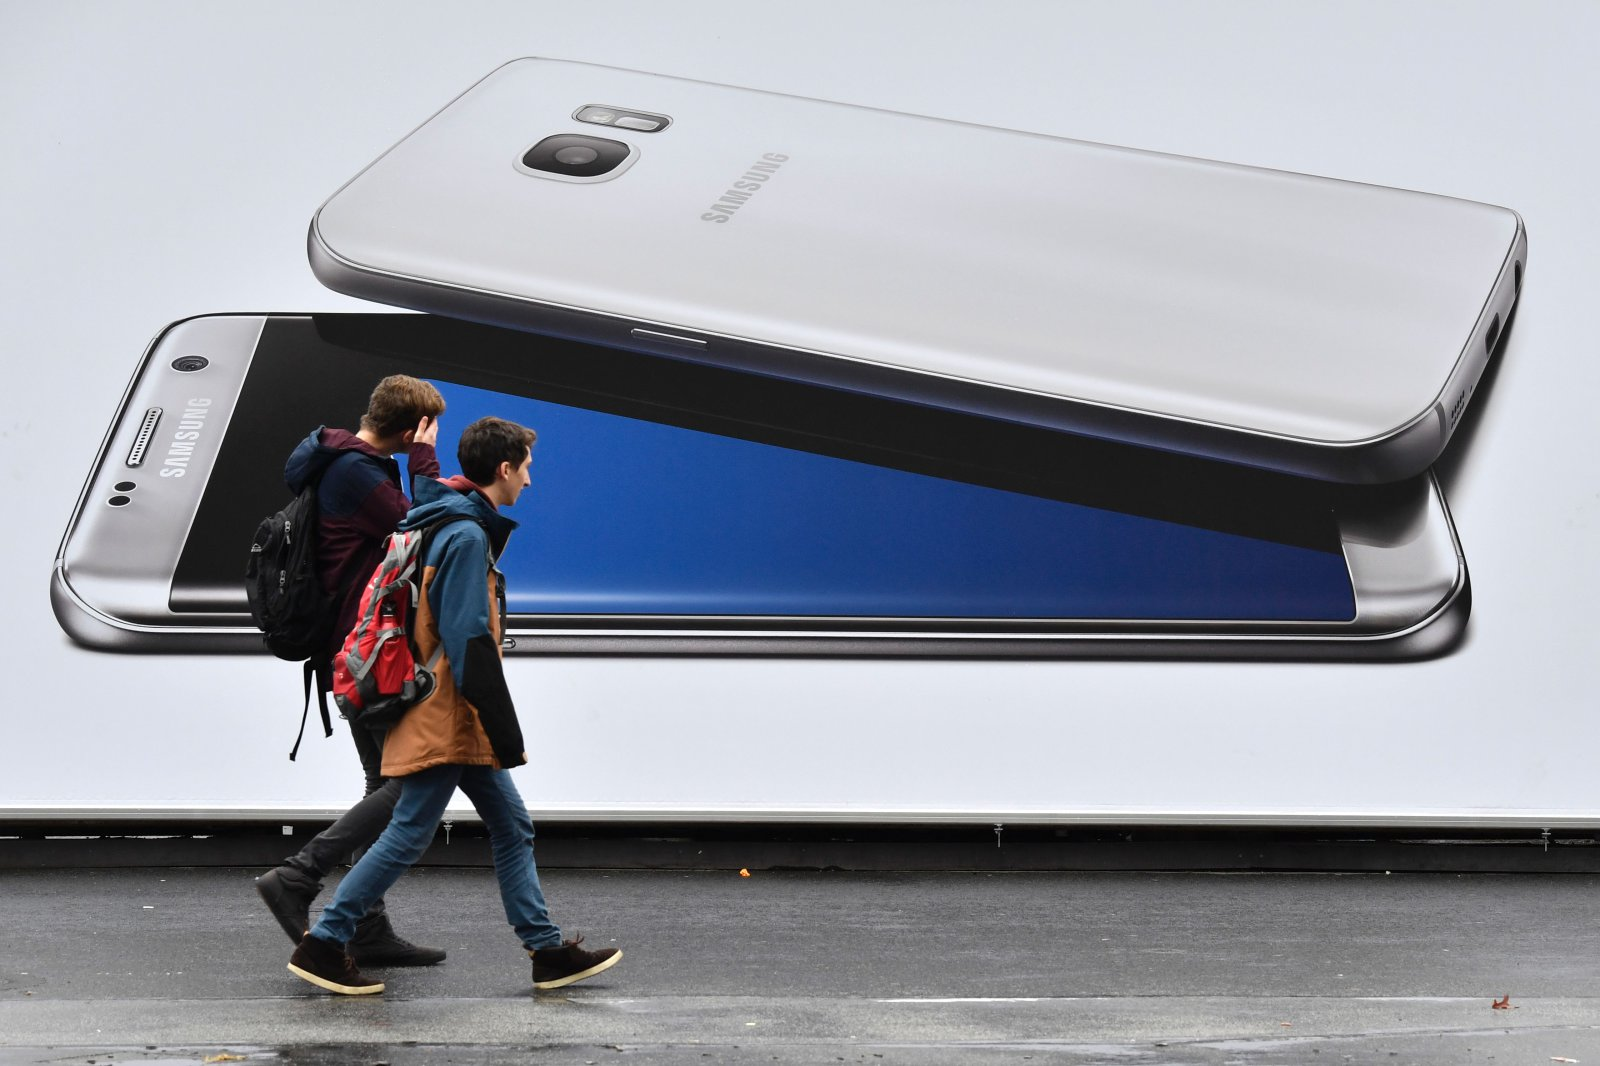 Samsung's Galaxy S8 may ditch the headphone jack